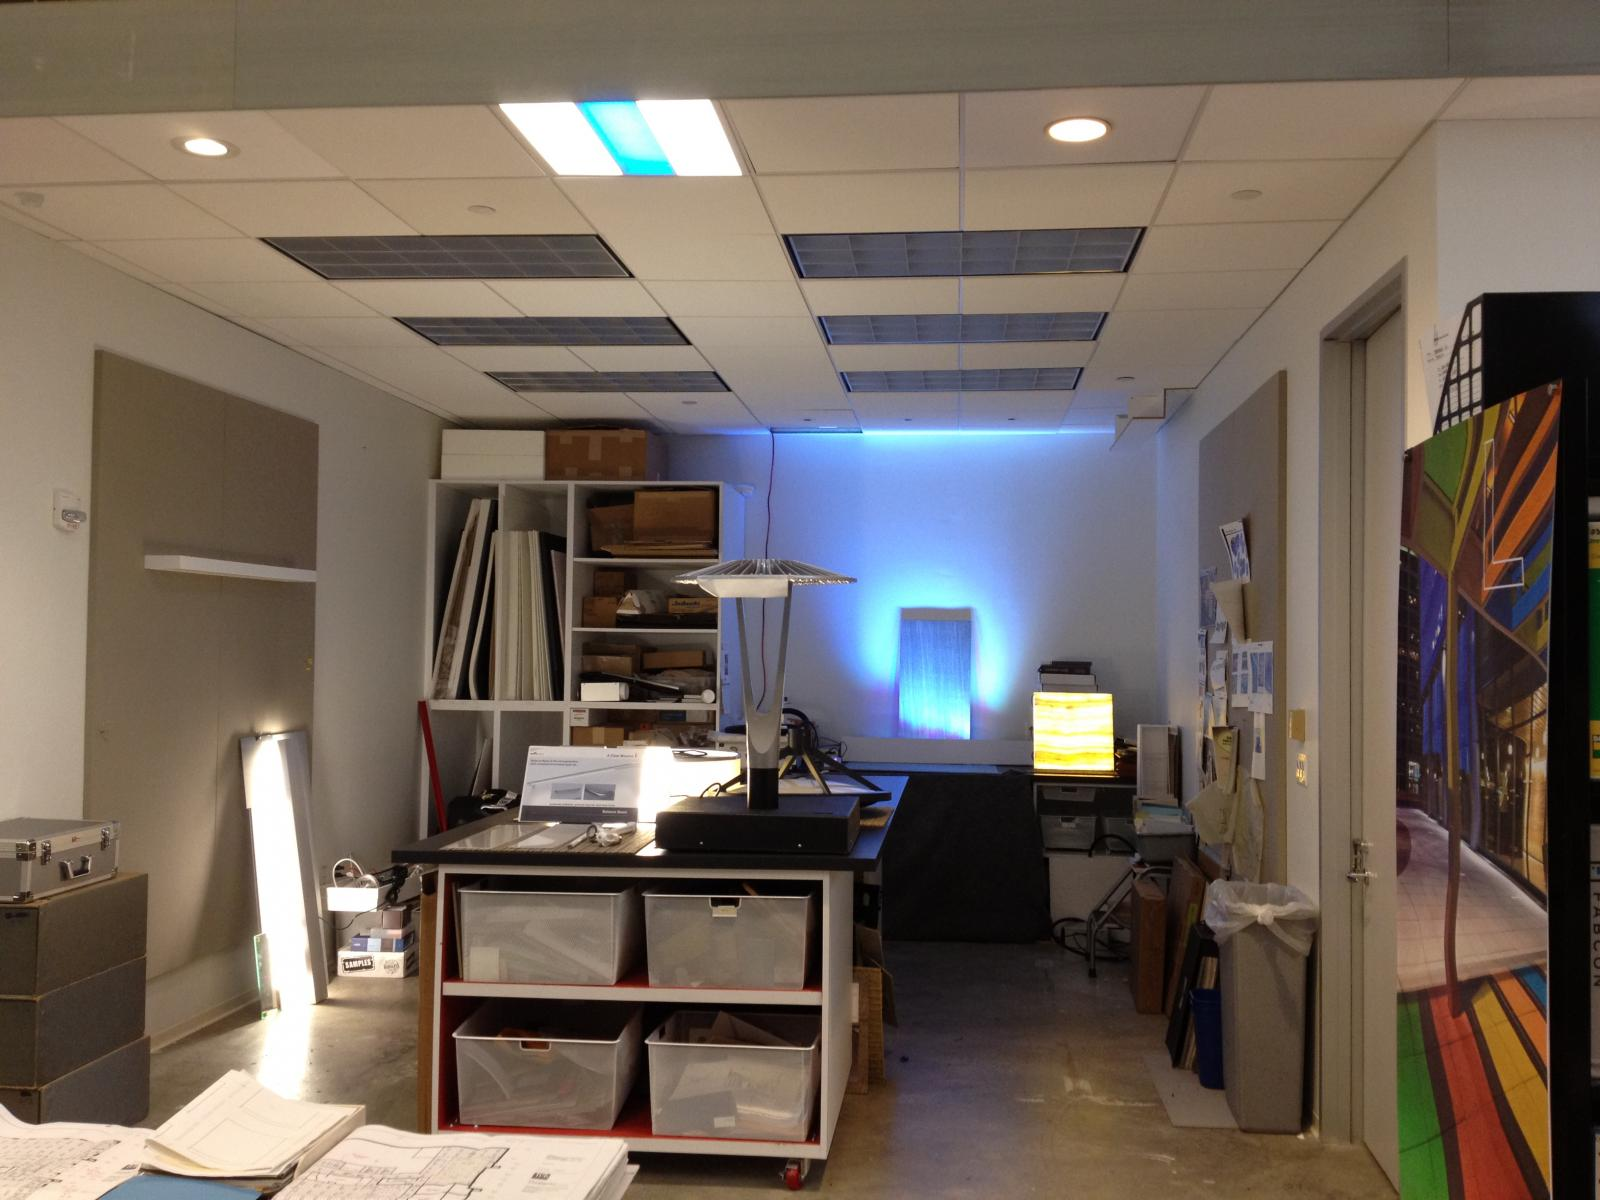 led home lighting interior lighting will become mainstream the orange house in turkey is vibrant and spell binding